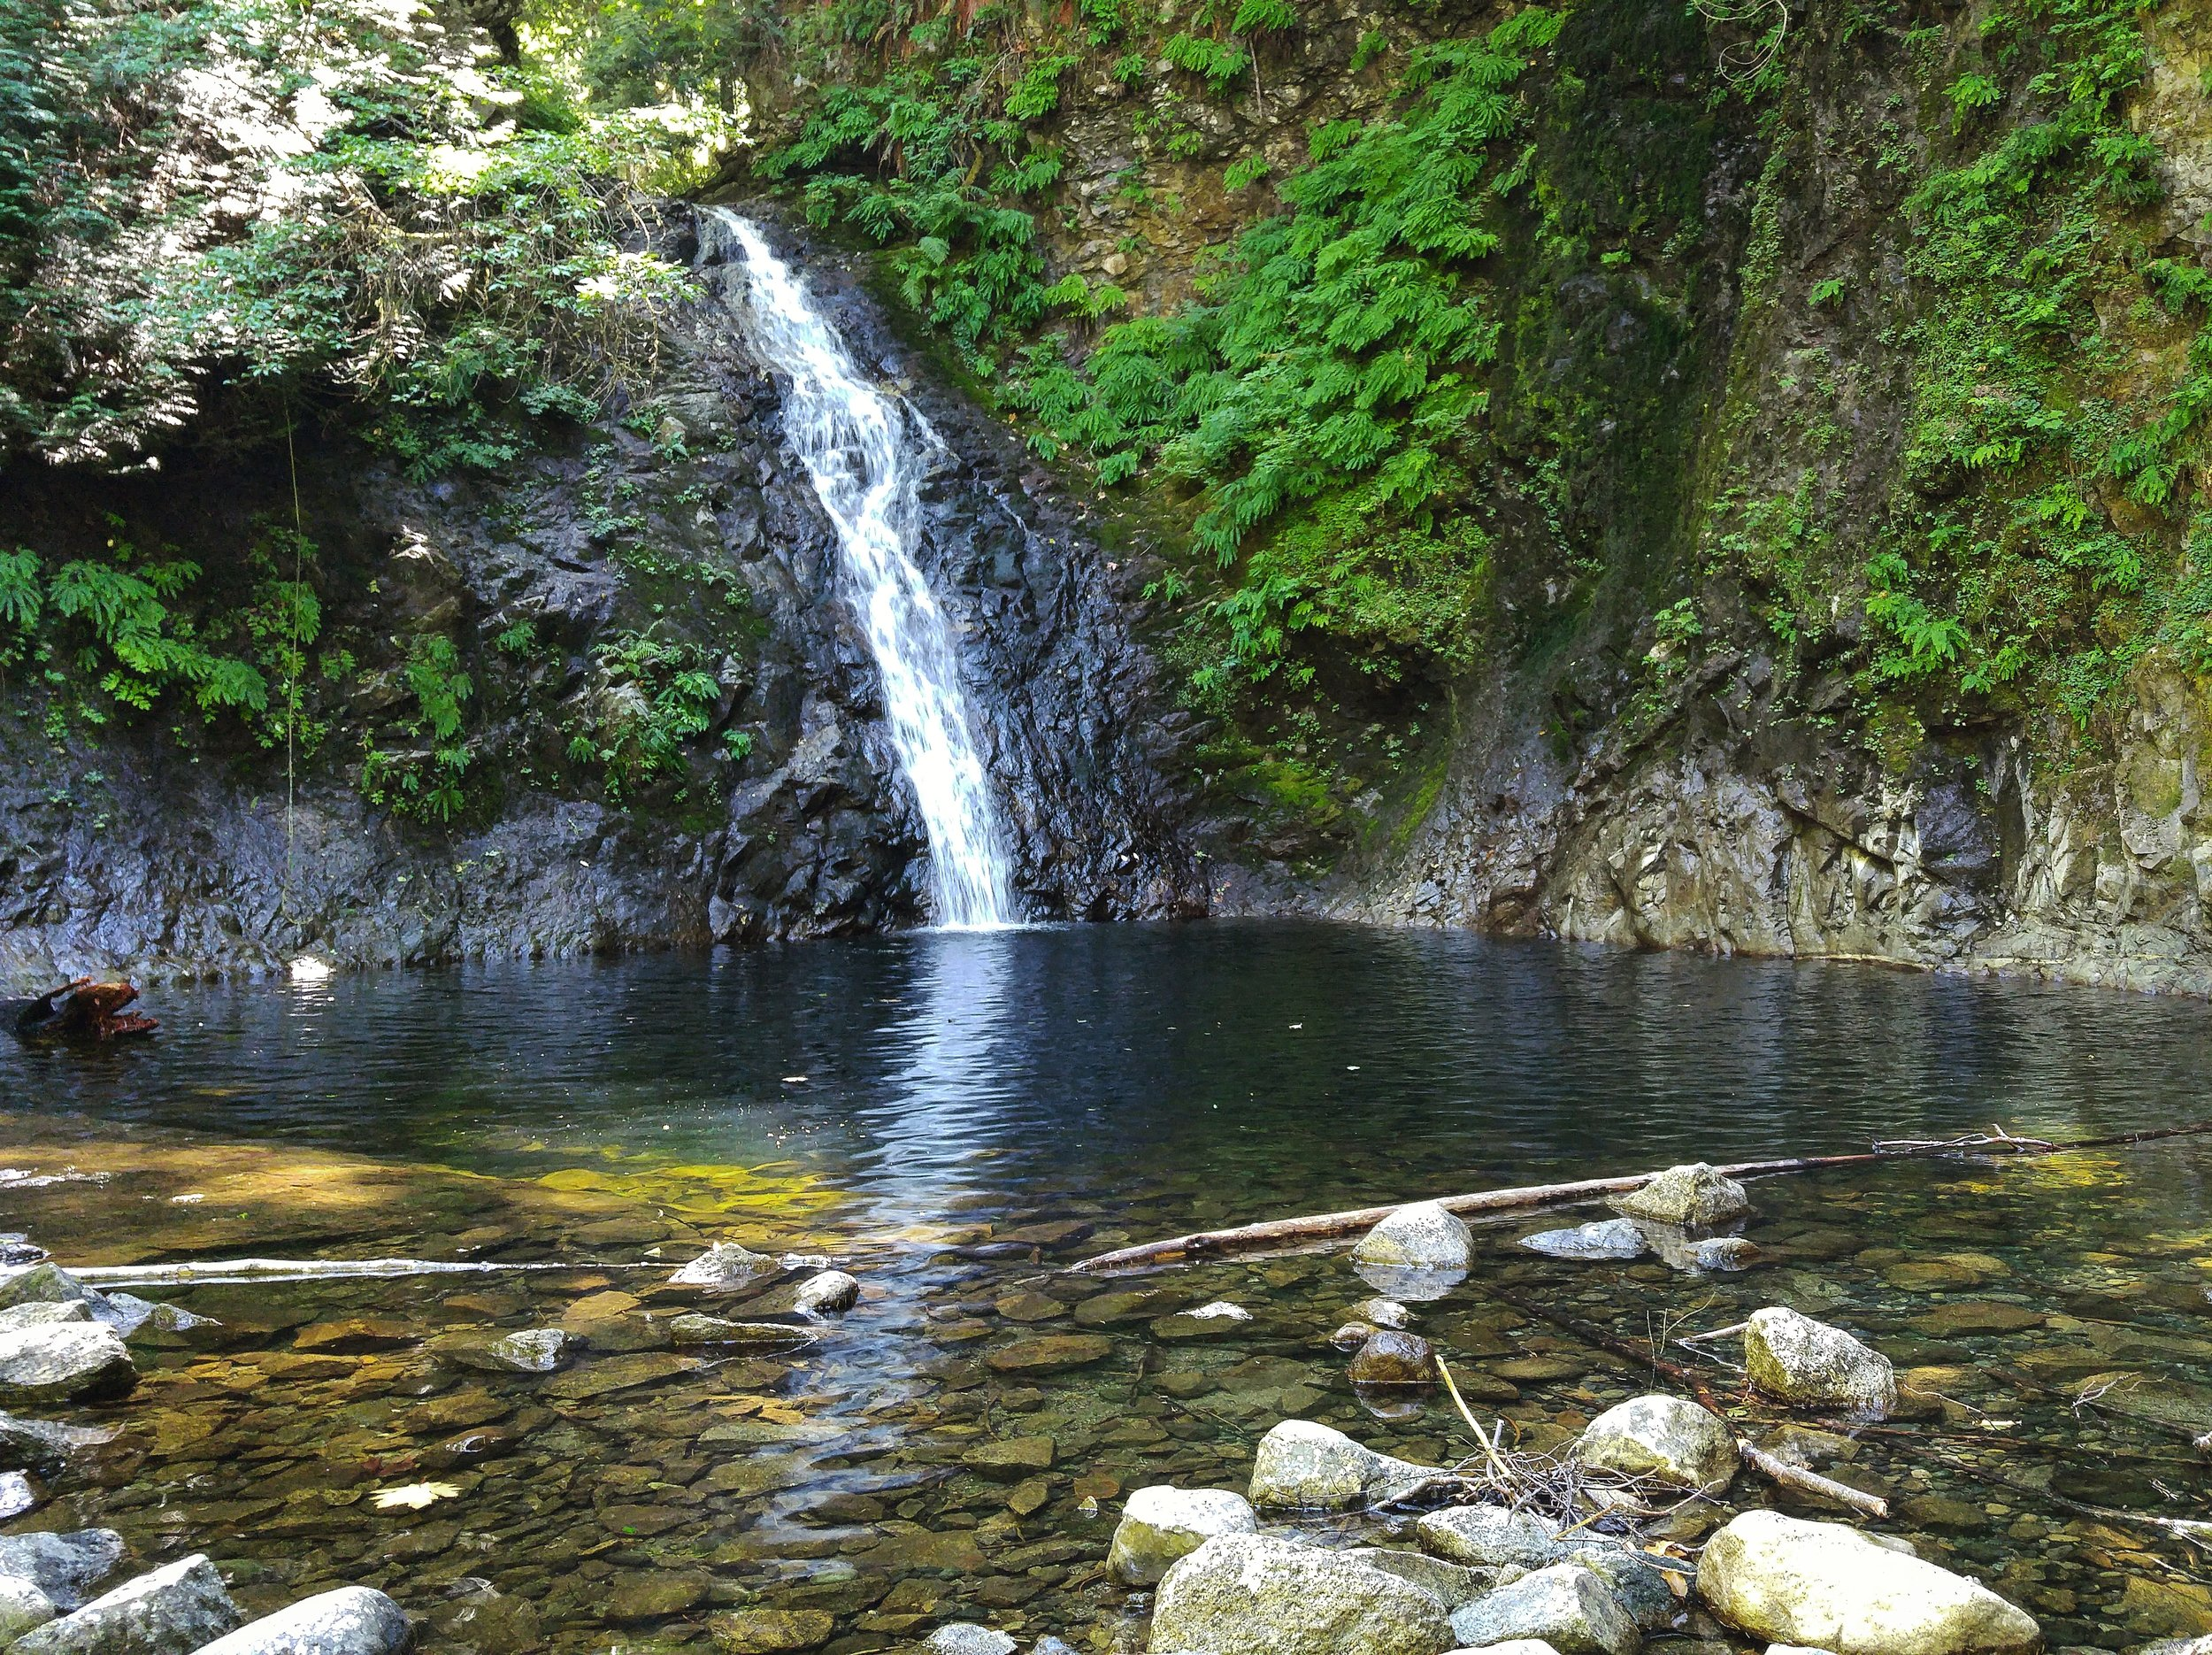 A secret mountain pool. It's quite a hike to get there, and quite a shockingly cold swim, but a purely magical place.